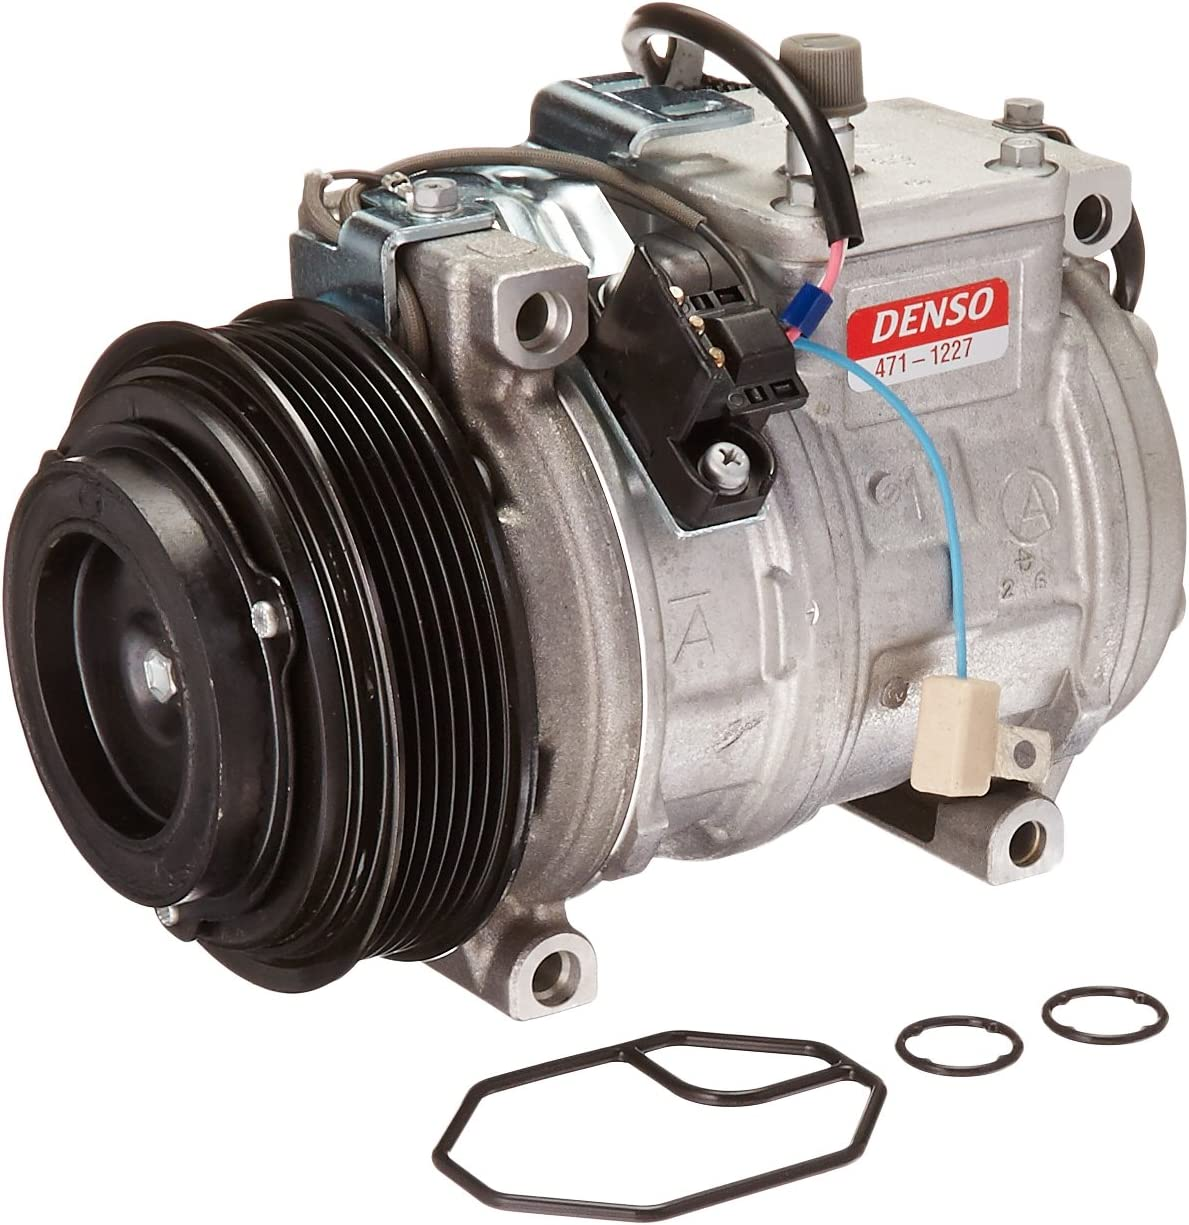 Denso 471-1227 New Compressor with Clutch